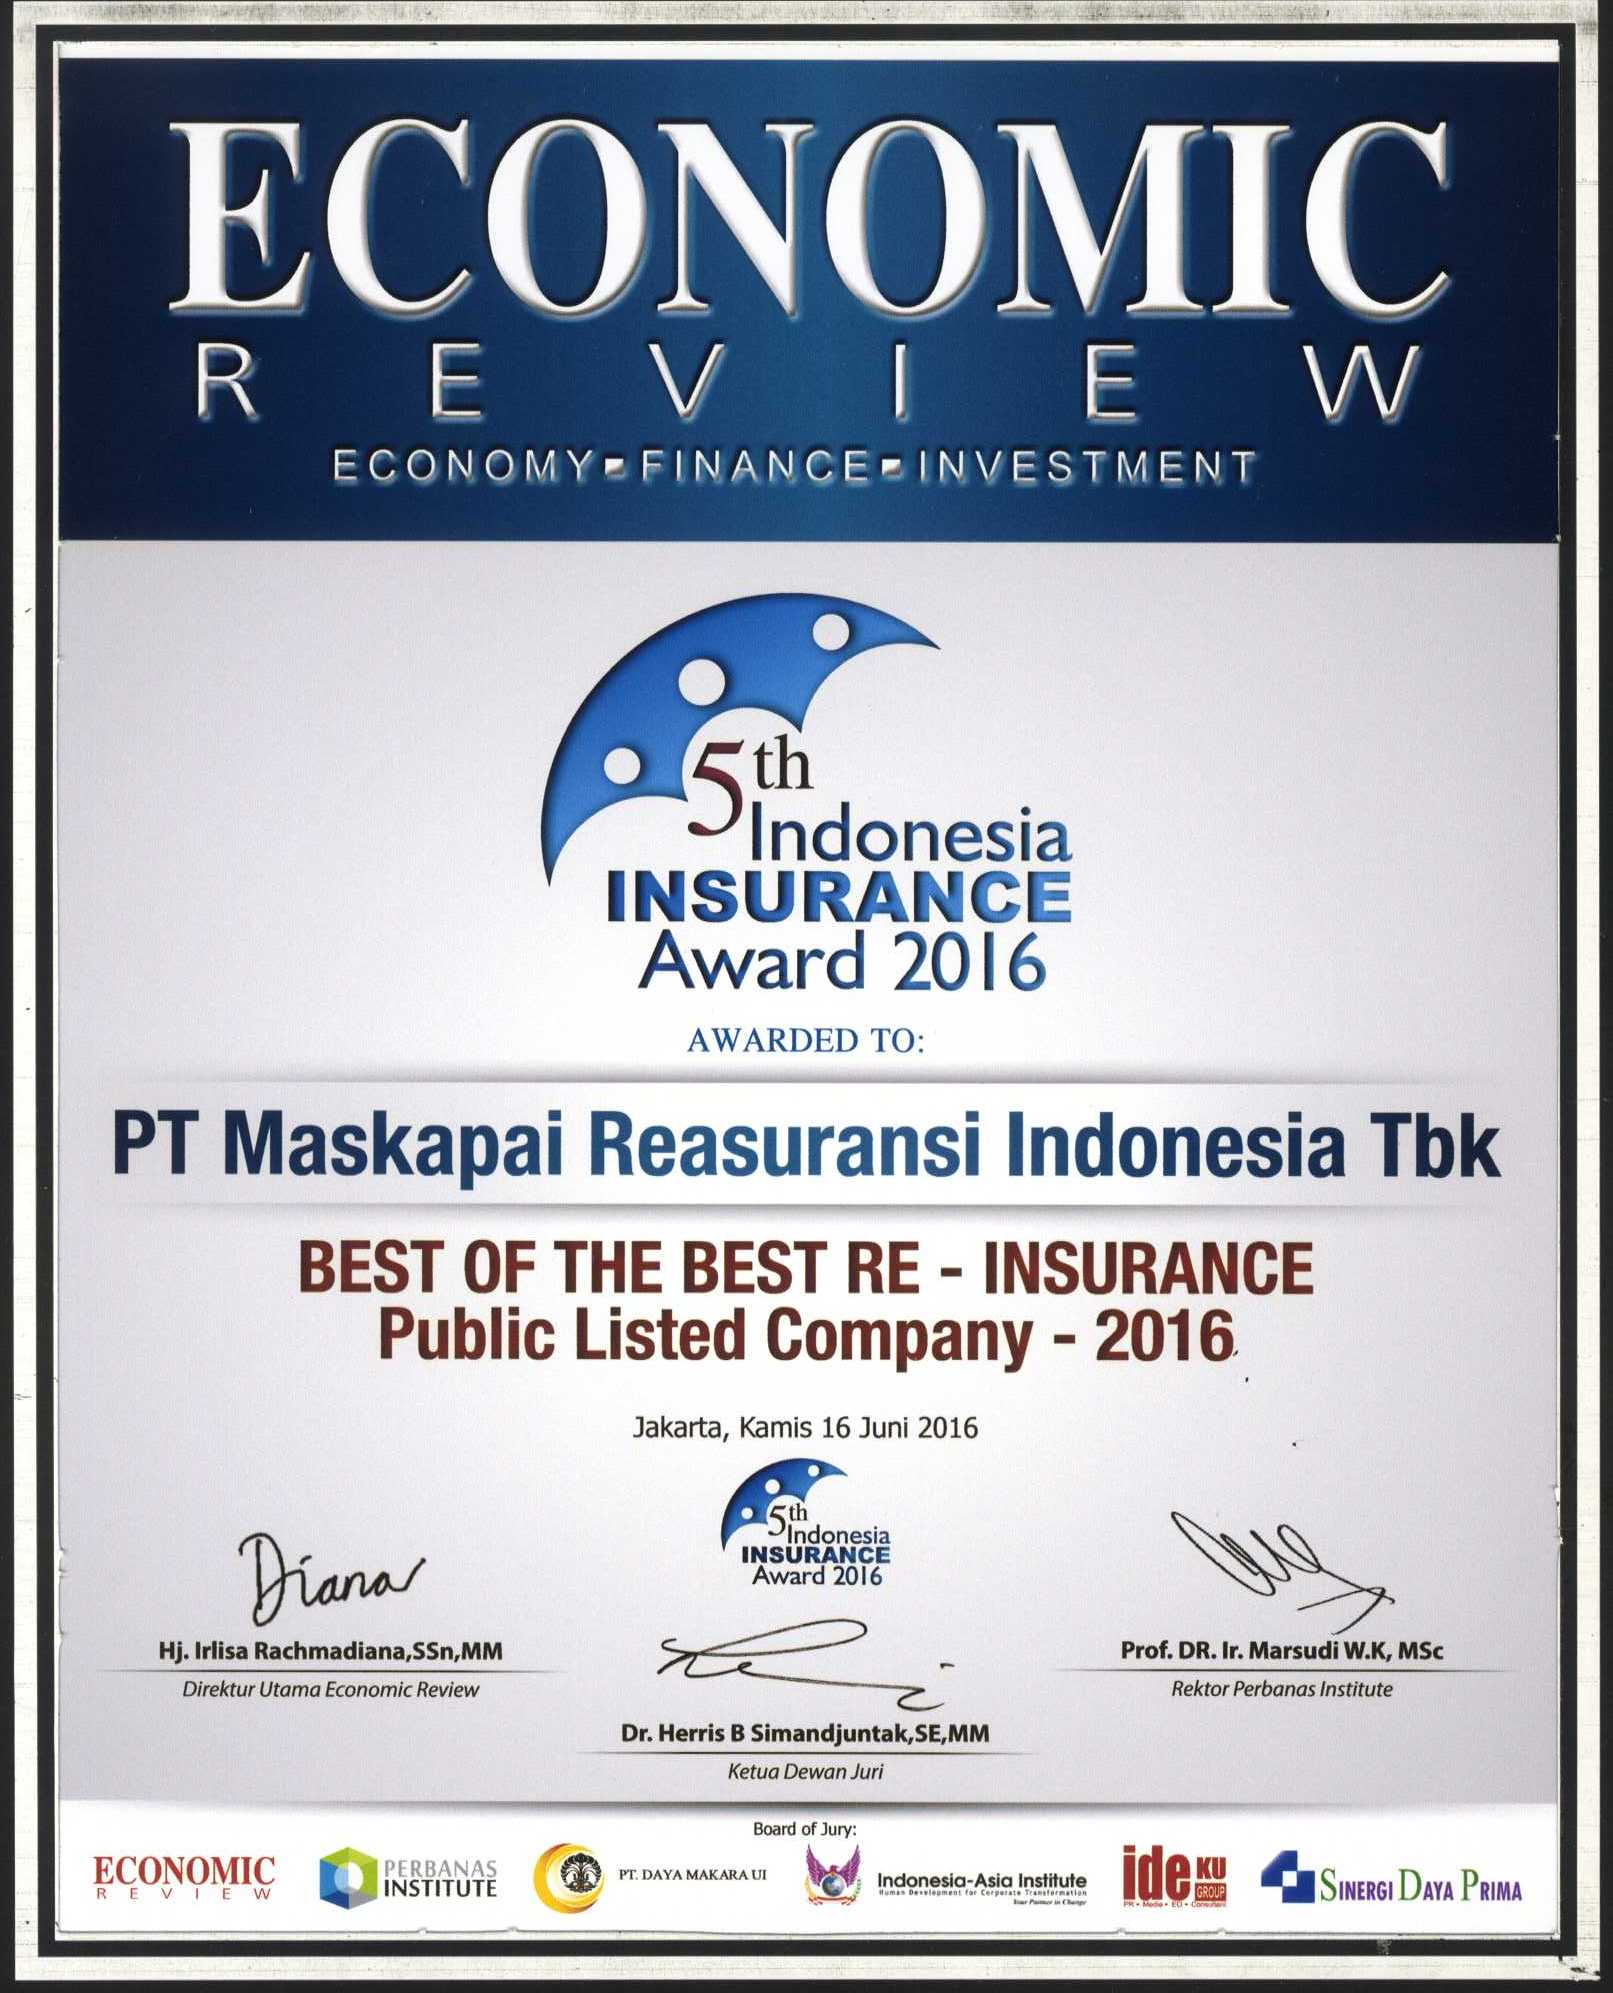 Majalah Economic Review : Top Public Listed Company 2016